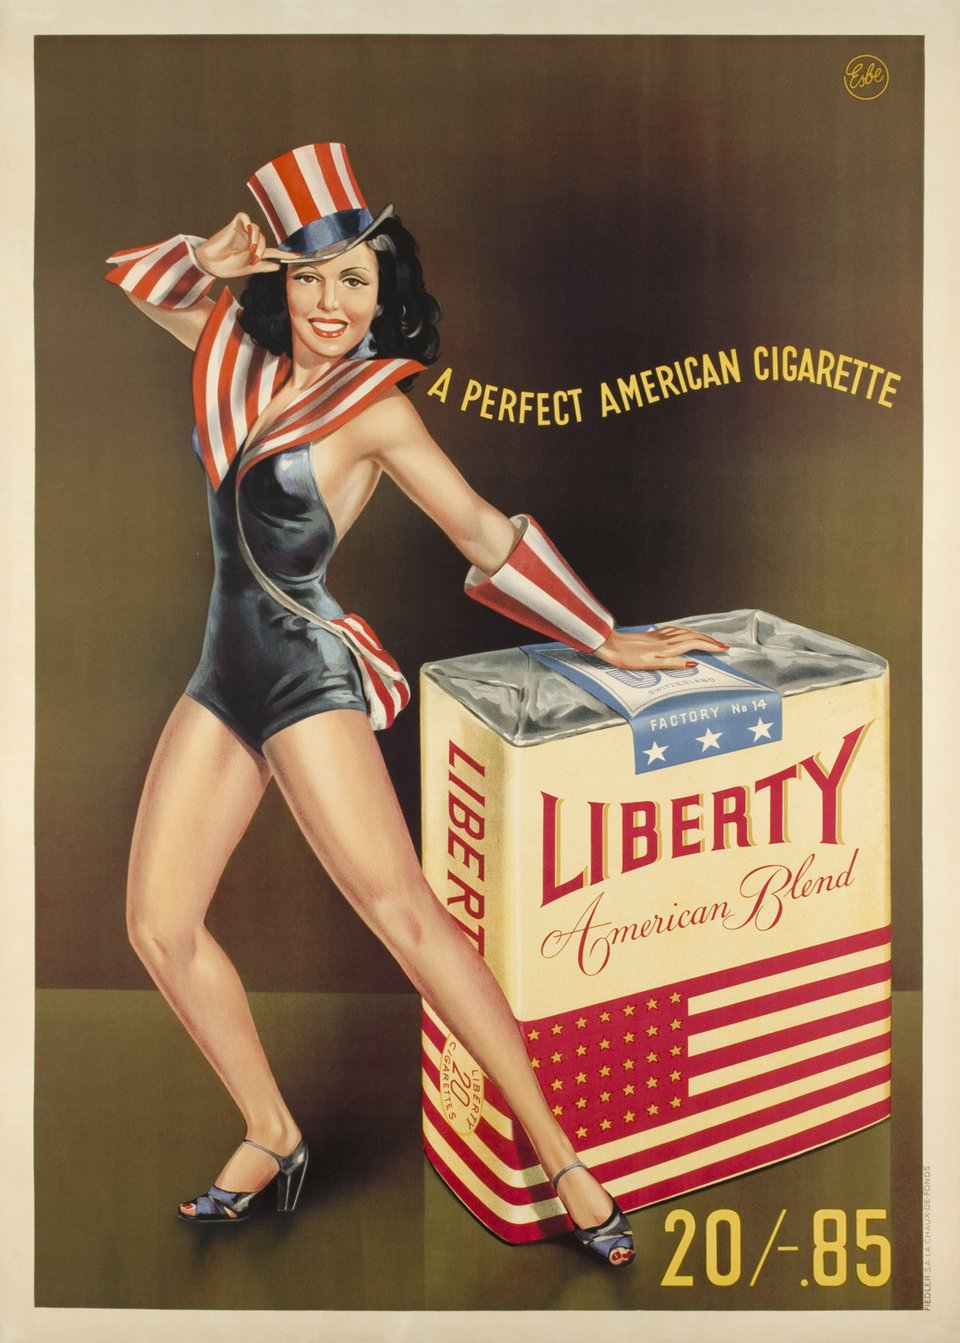 Liberty, a perfect american cigarette – Affiche ancienne –  ESBE – 1947